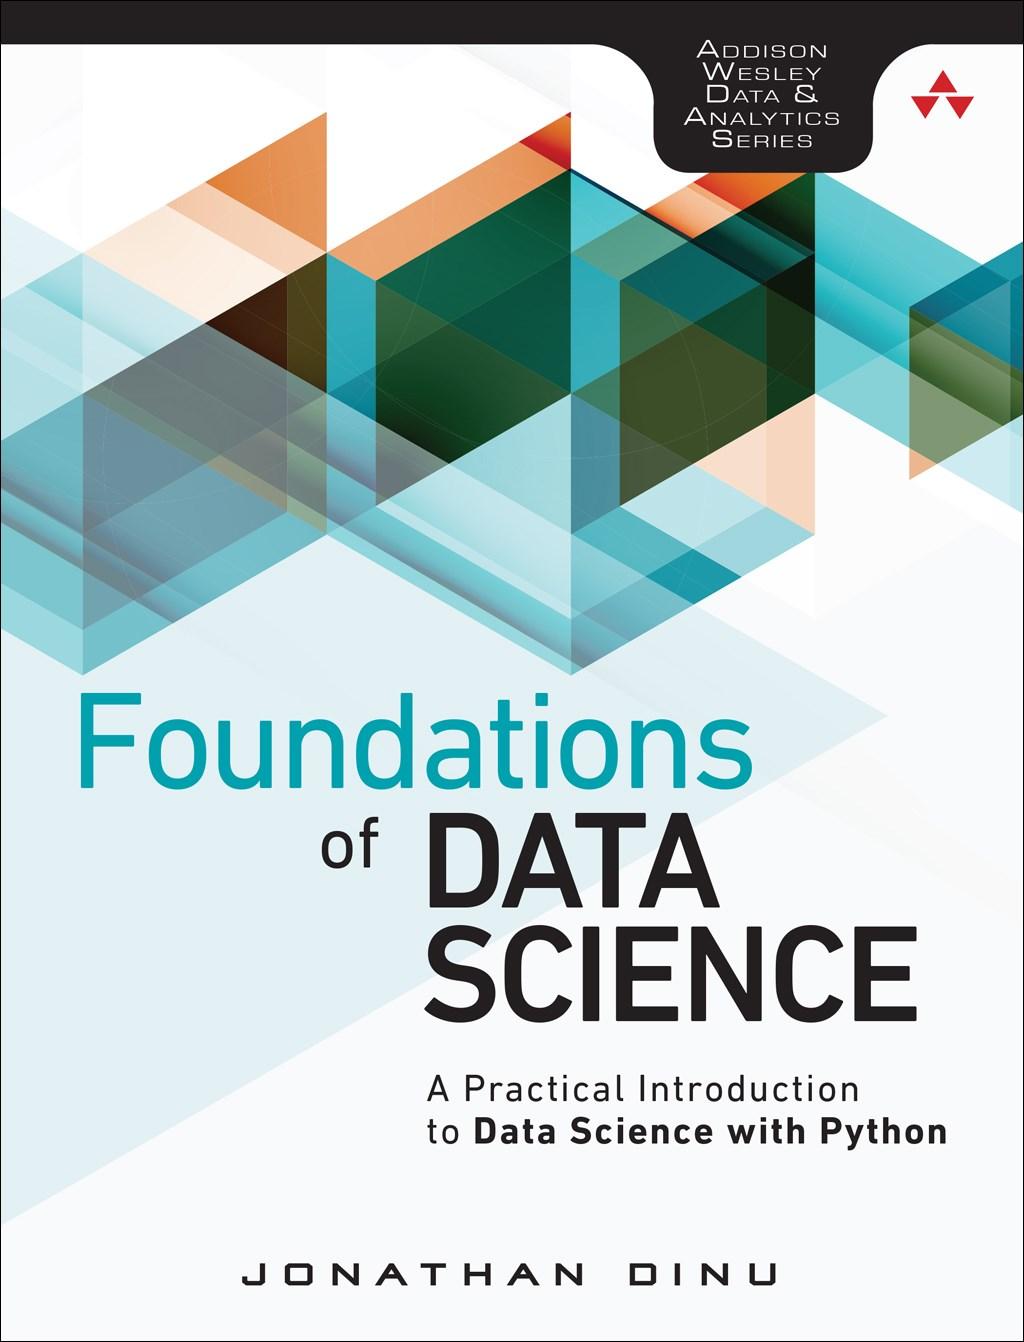 Foundations of Data Science: A Practical Introduction to Data Science with Python